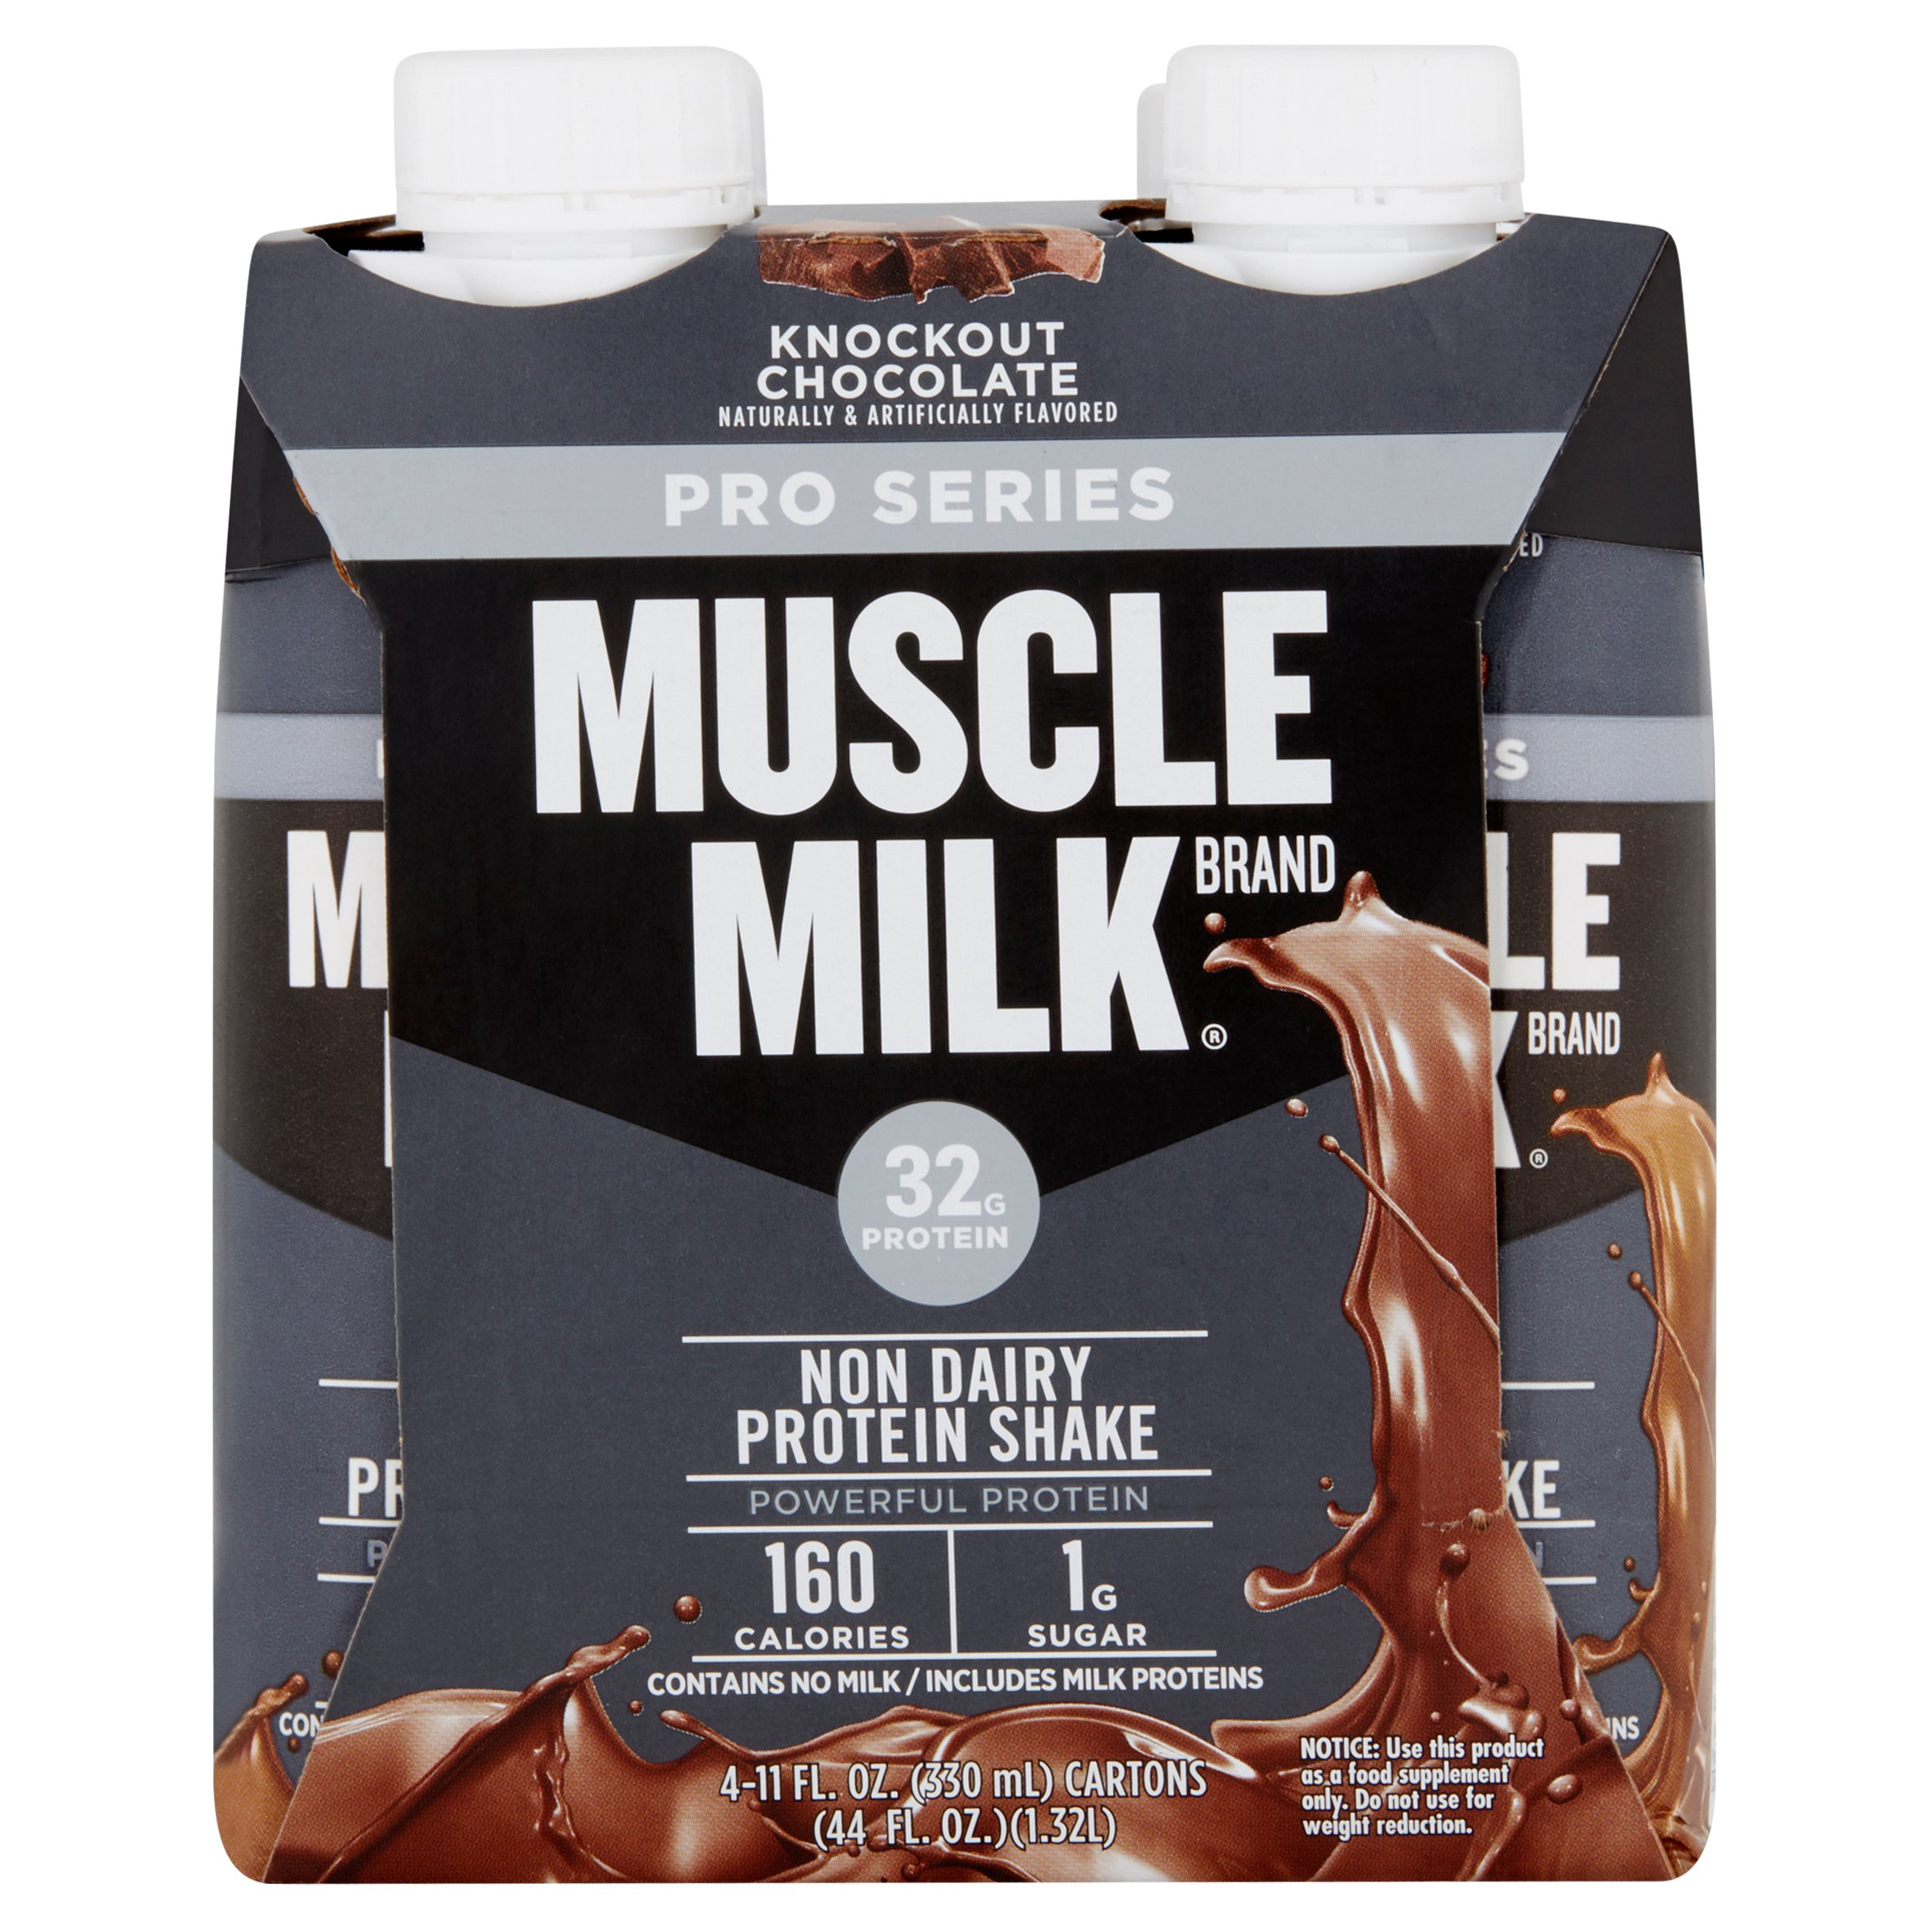 Muscle Milk Pro Series Shake 32 Grams Of Protein Knockout Chocolate 11 Oz 4 Ct